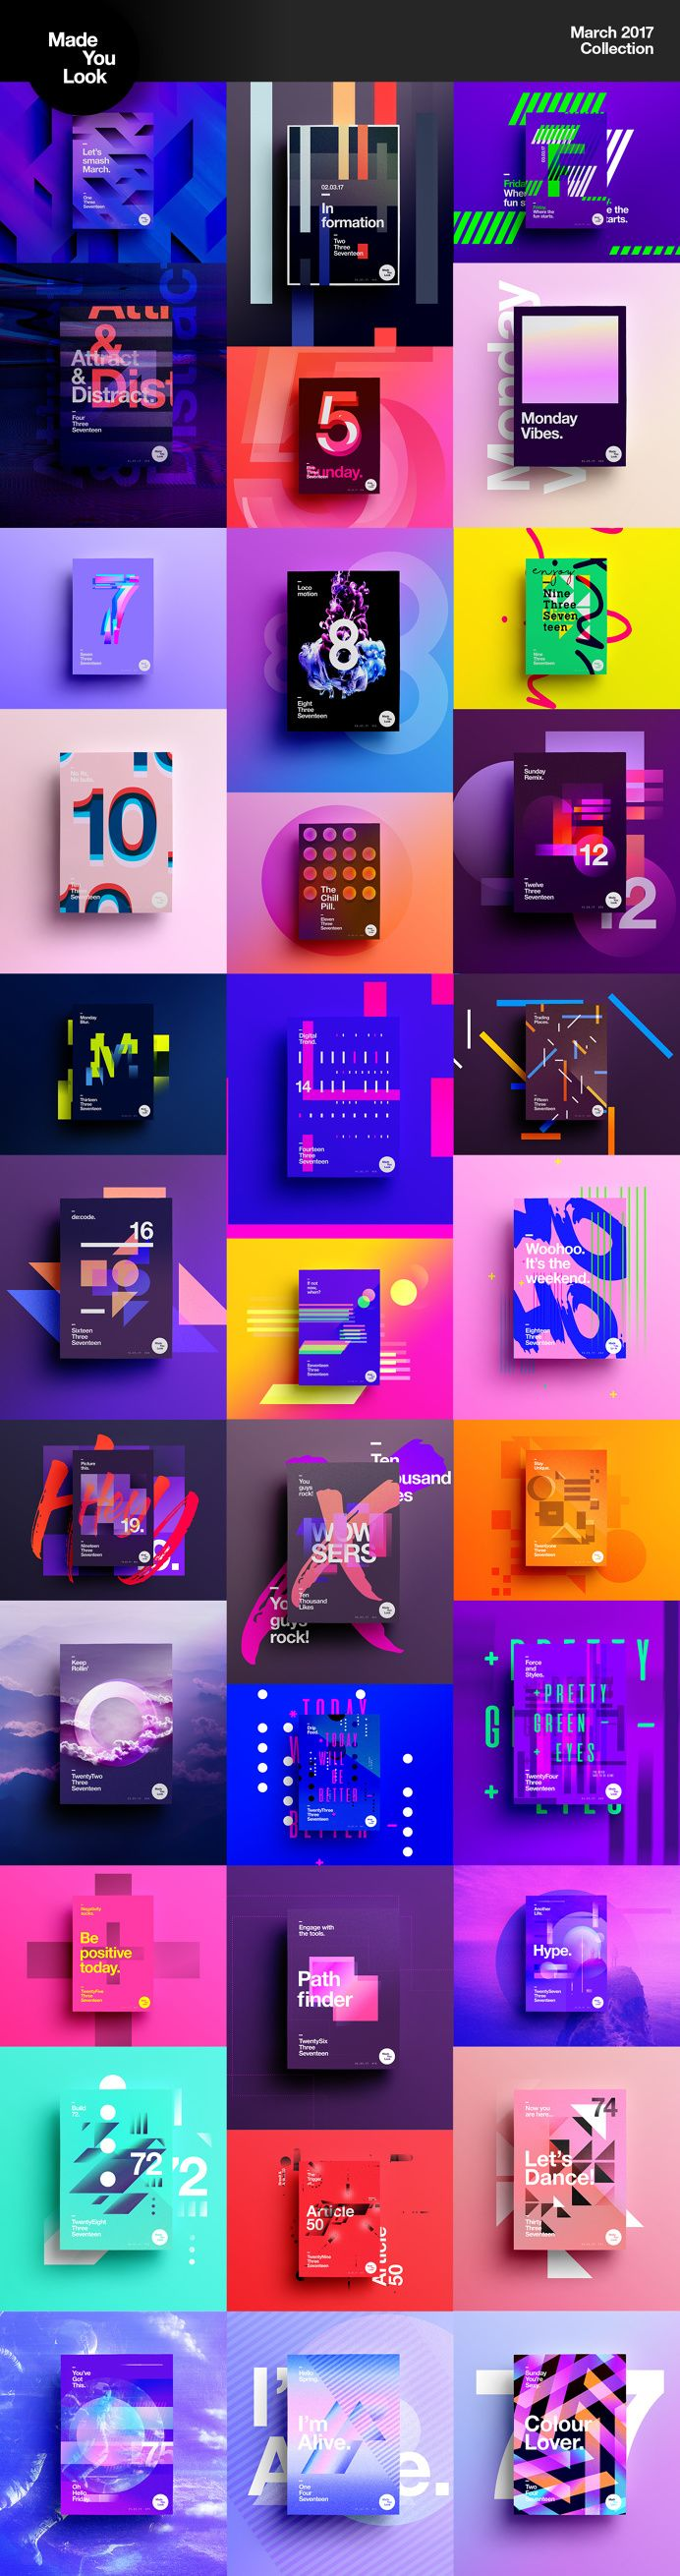 Made You Look   Poster Collection 2017 on Behance